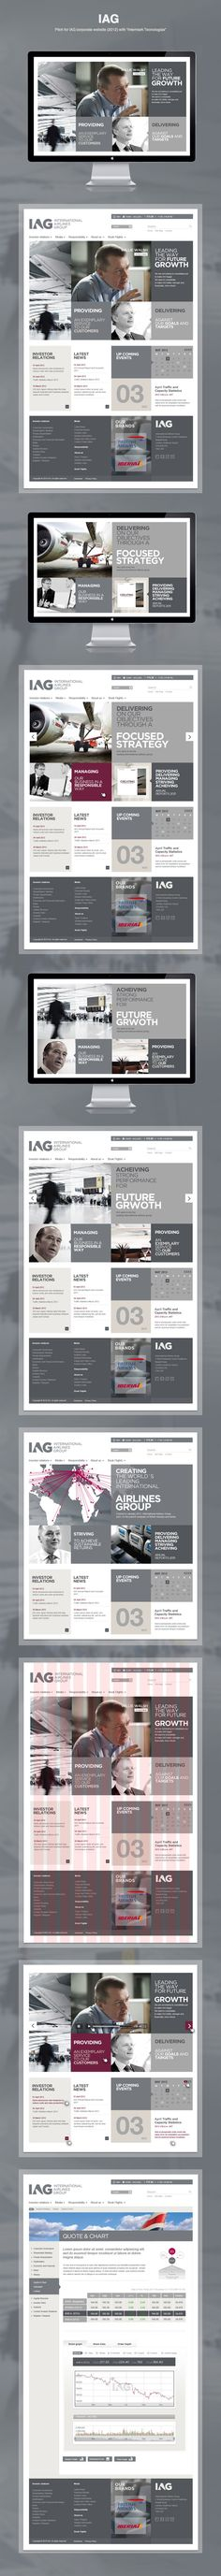 "IAG by Yan Duffield, via Behance *** ""Pitch for IAG corporate website with ""Intermark Tecnologias"""" - Love a good success story? Learn how I went from zero to 1 million in sales in 5 months with an e-commerce store. Page Design, Ui Design, Layout Design, Flat Design, Gui Interface, Interface Design, Website Design Inspiration, Intranet Portal, Intranet Design"